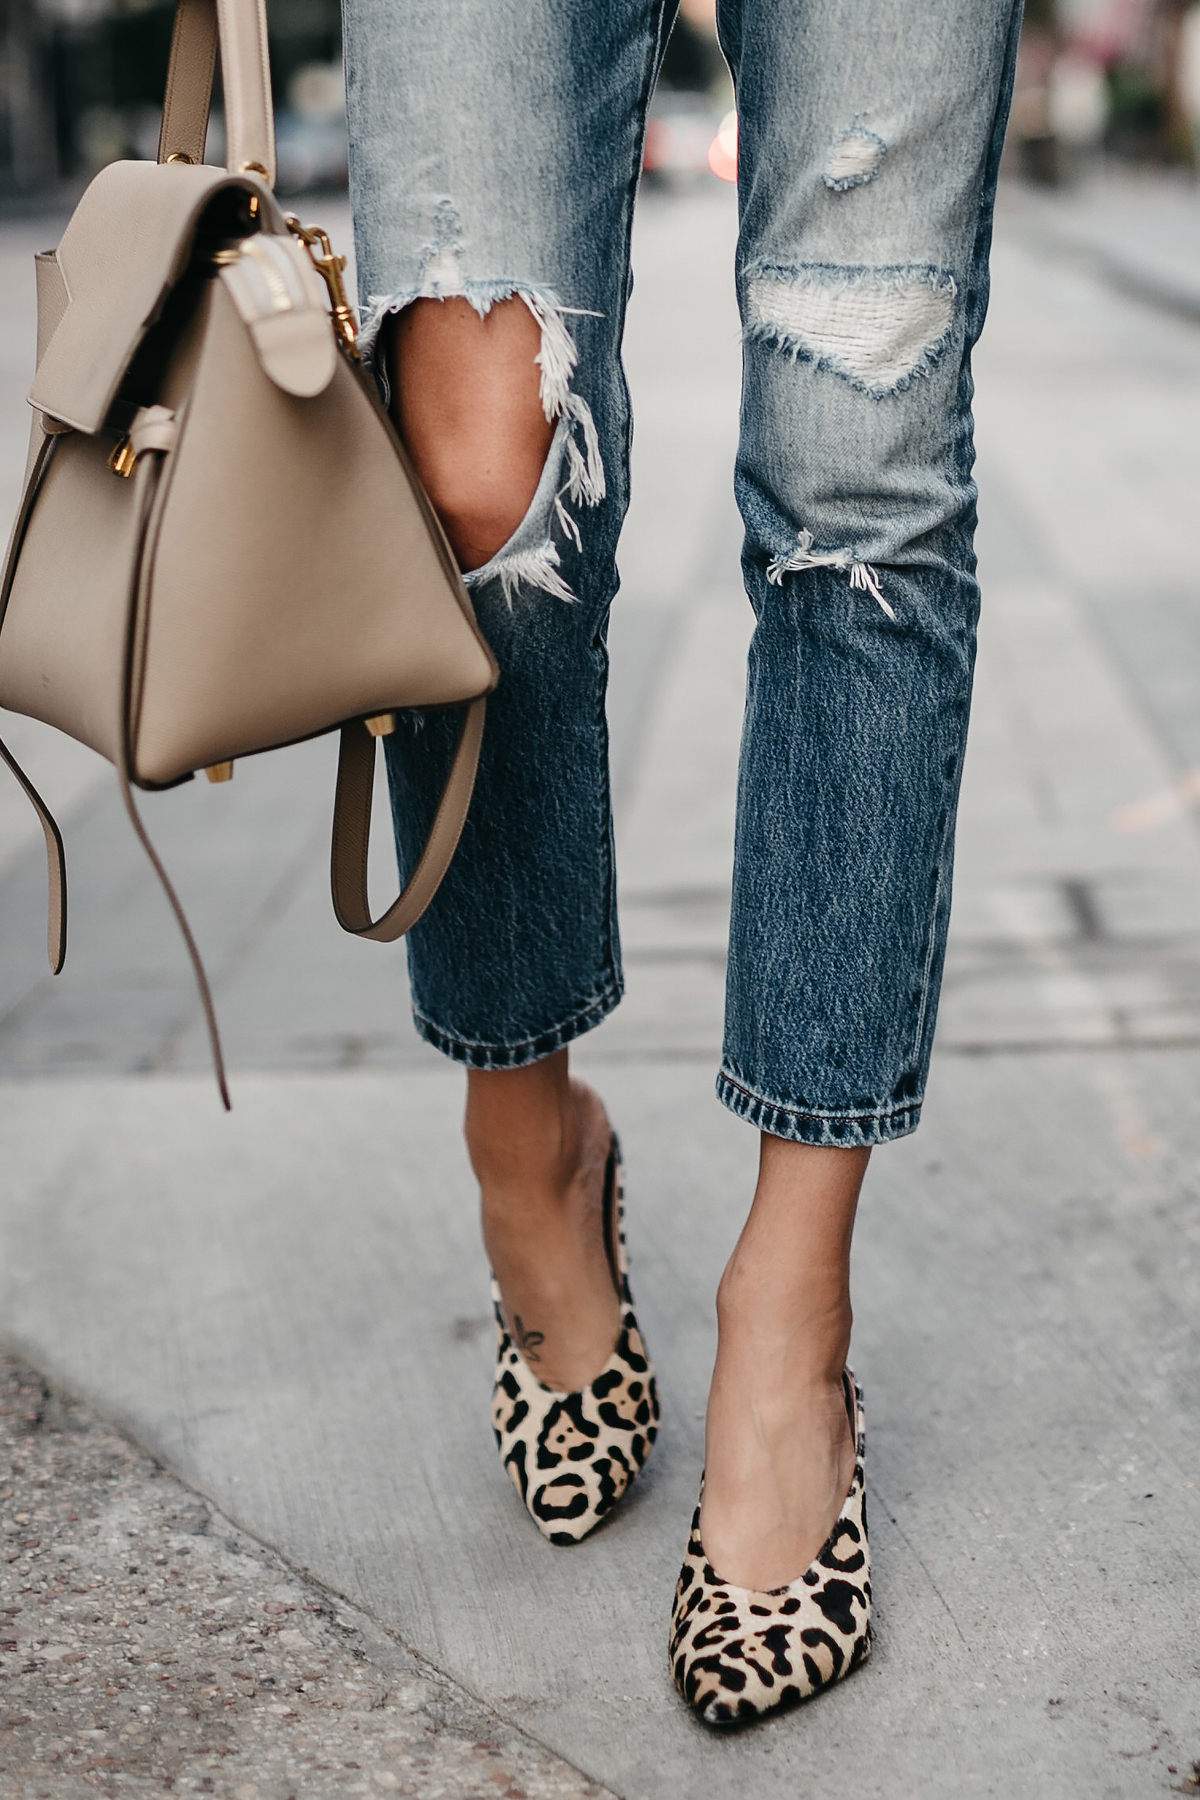 Denim Ripped Jeans Celine Mini Belt Bag Leopard Heels Fall-Fashion Must Haves Fashion Jackson Dallas Blogger Fashion Blogger Street Style